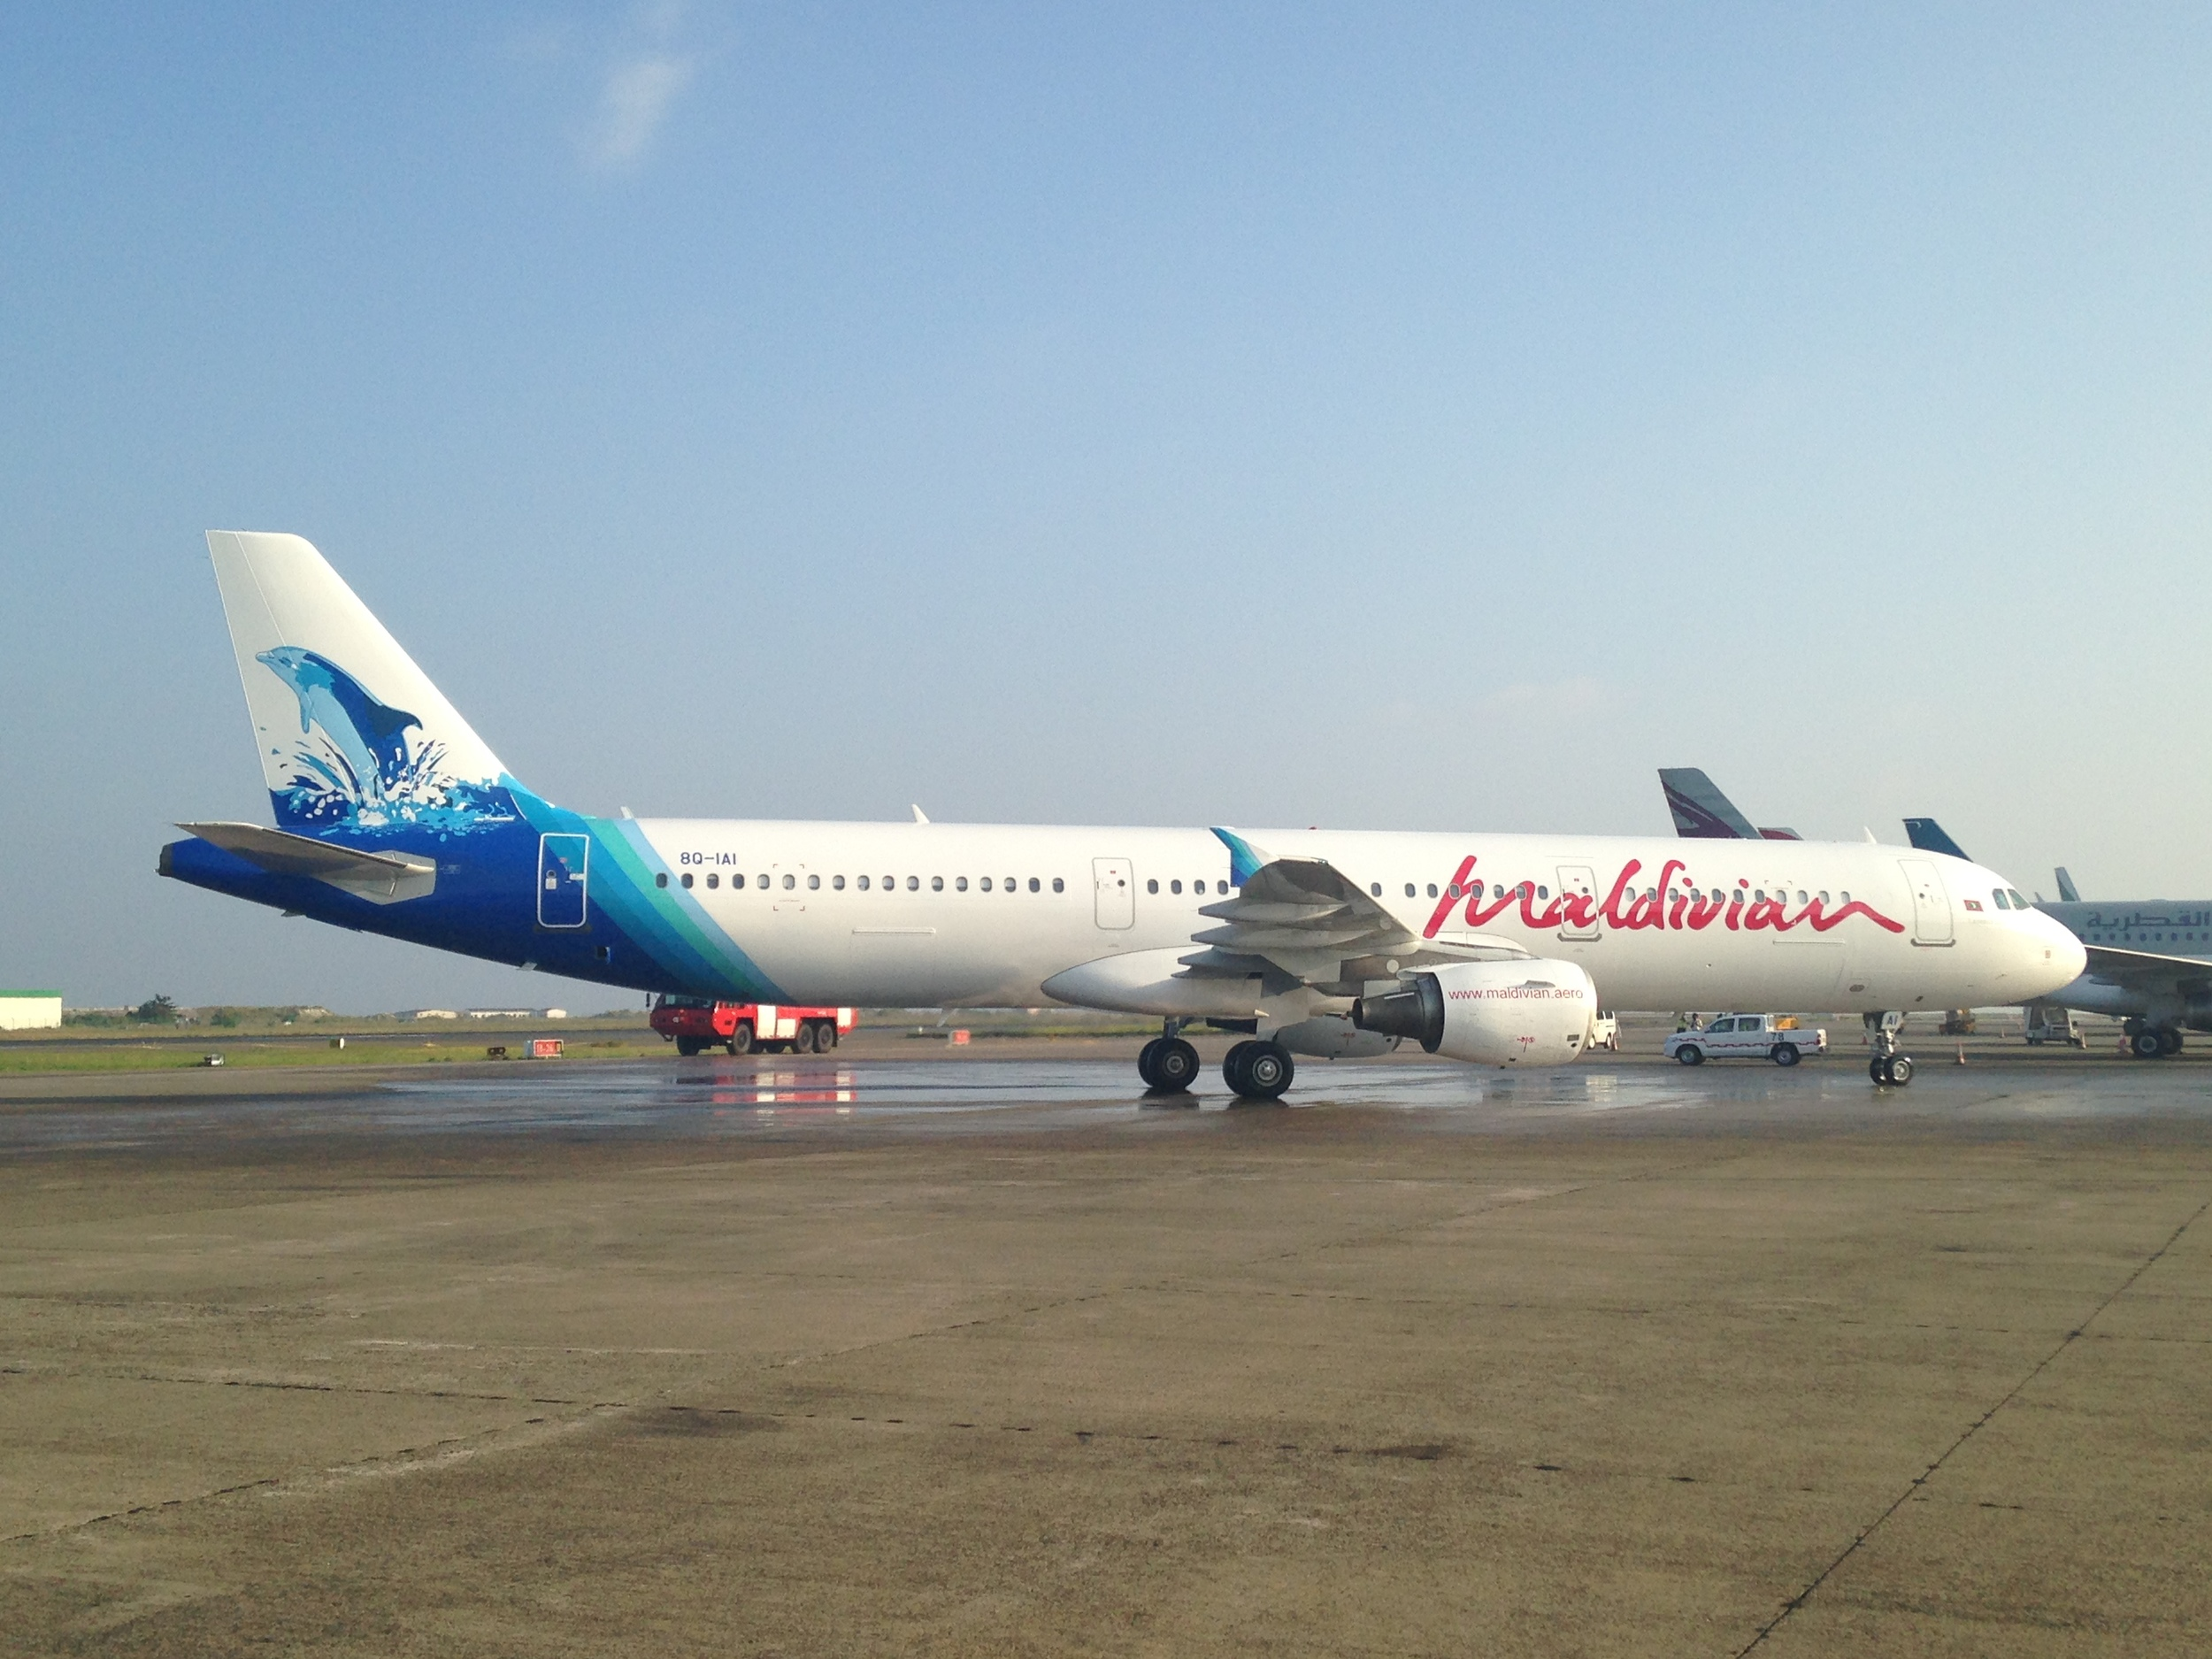 Maldivian received its first Airbus A321 earlier this year